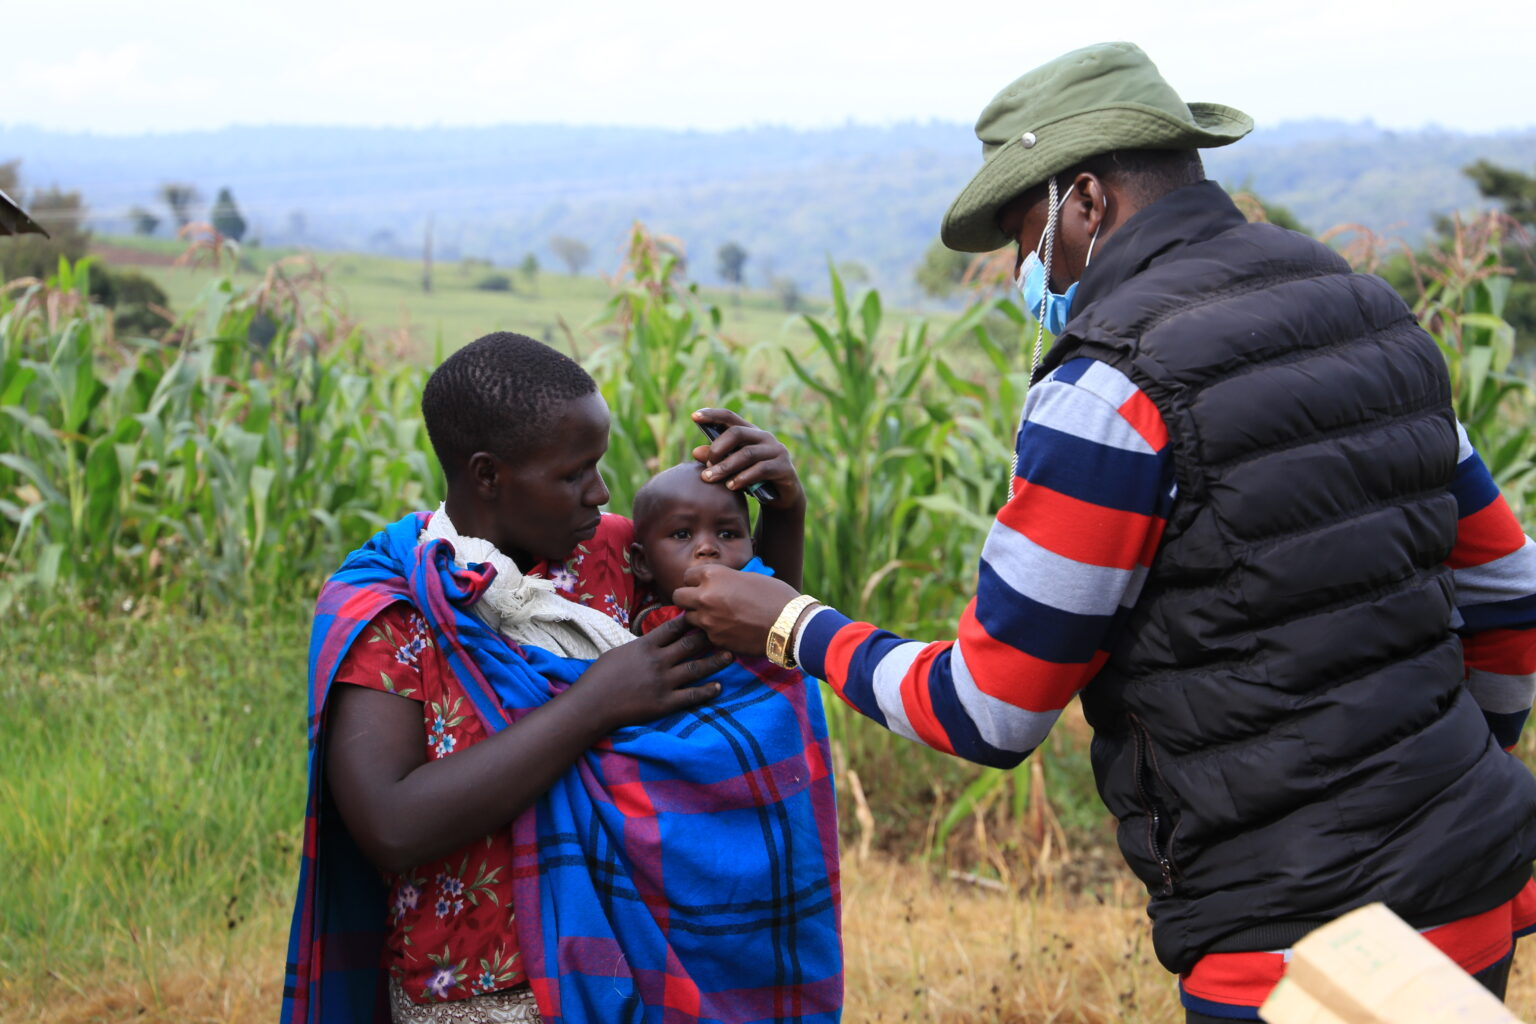 Mark, a community health volunteer, administers Vitamin A supplements and deworming tablets to children in Etereti village in Narok South, Narok County.